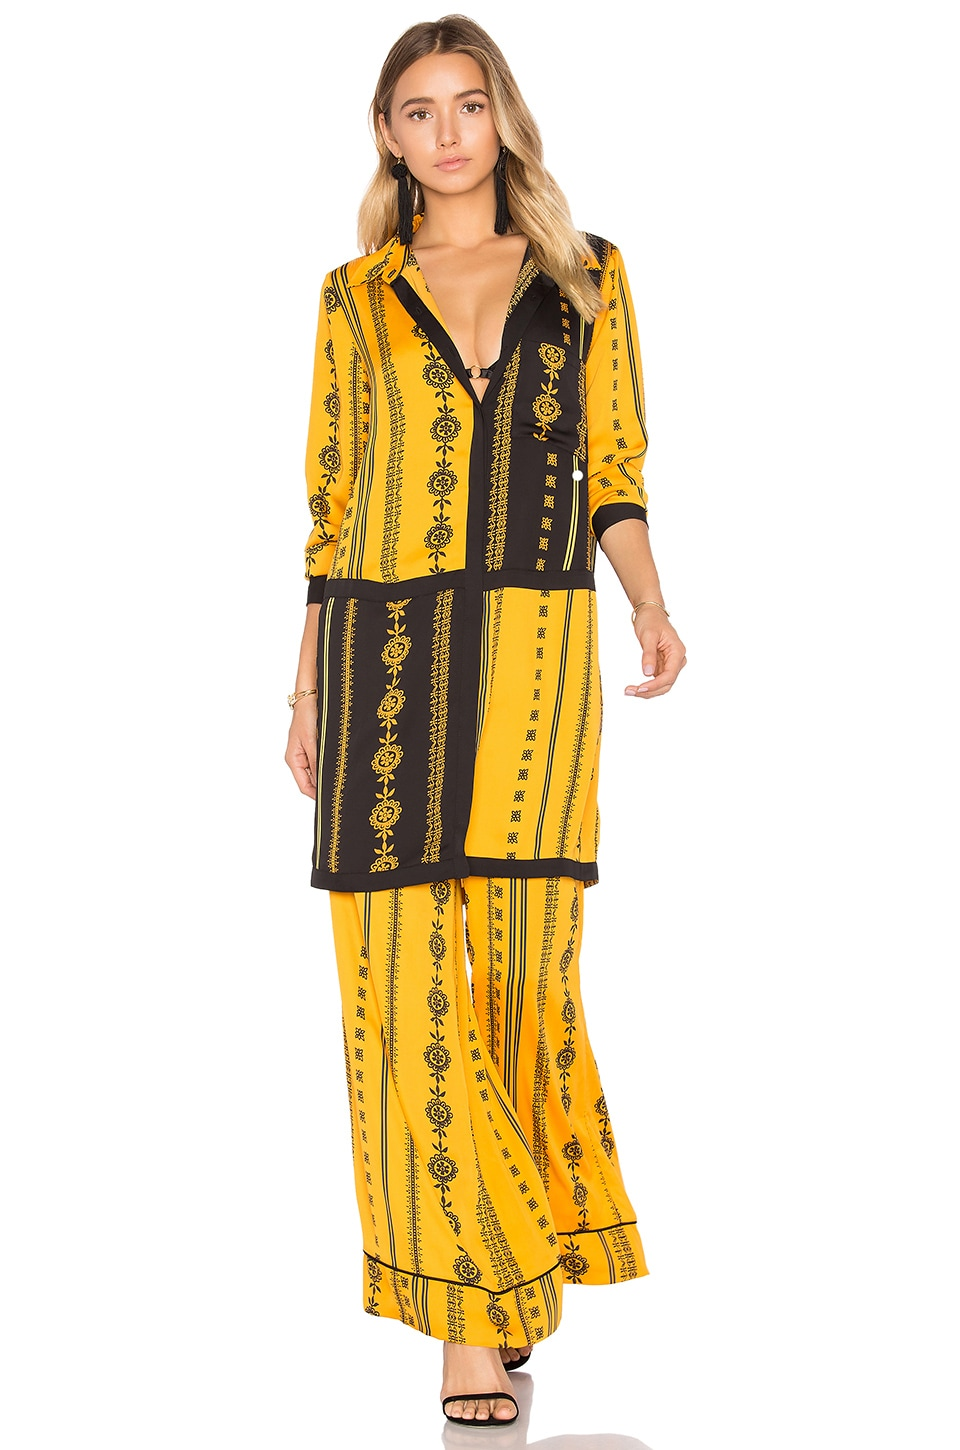 House of Harlow 1960 x REVOLVE Marie Blouse in Inca Pajama Print